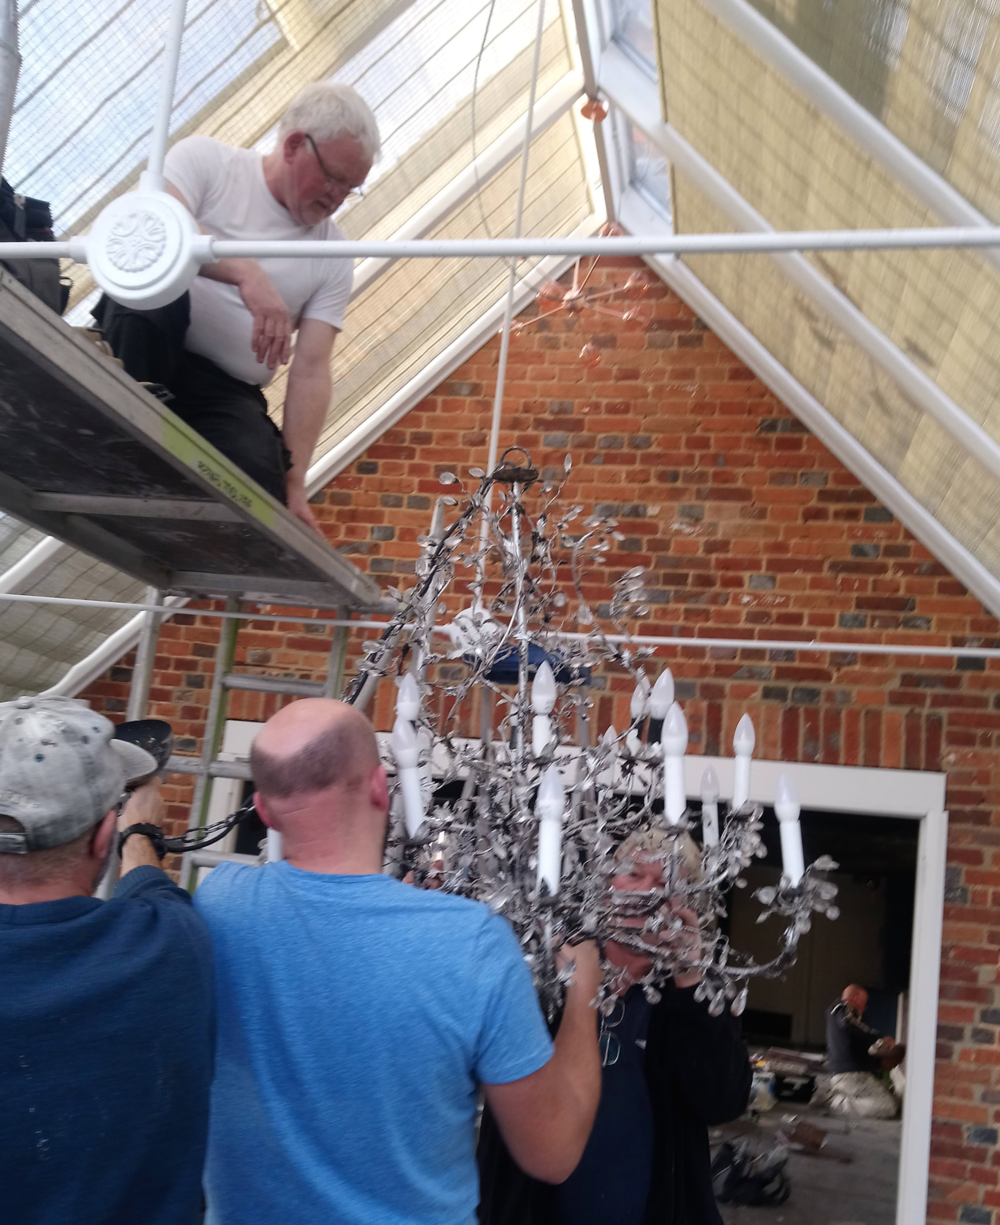 The chandelier came down…(of course there were Only Fools and Horses jokes)